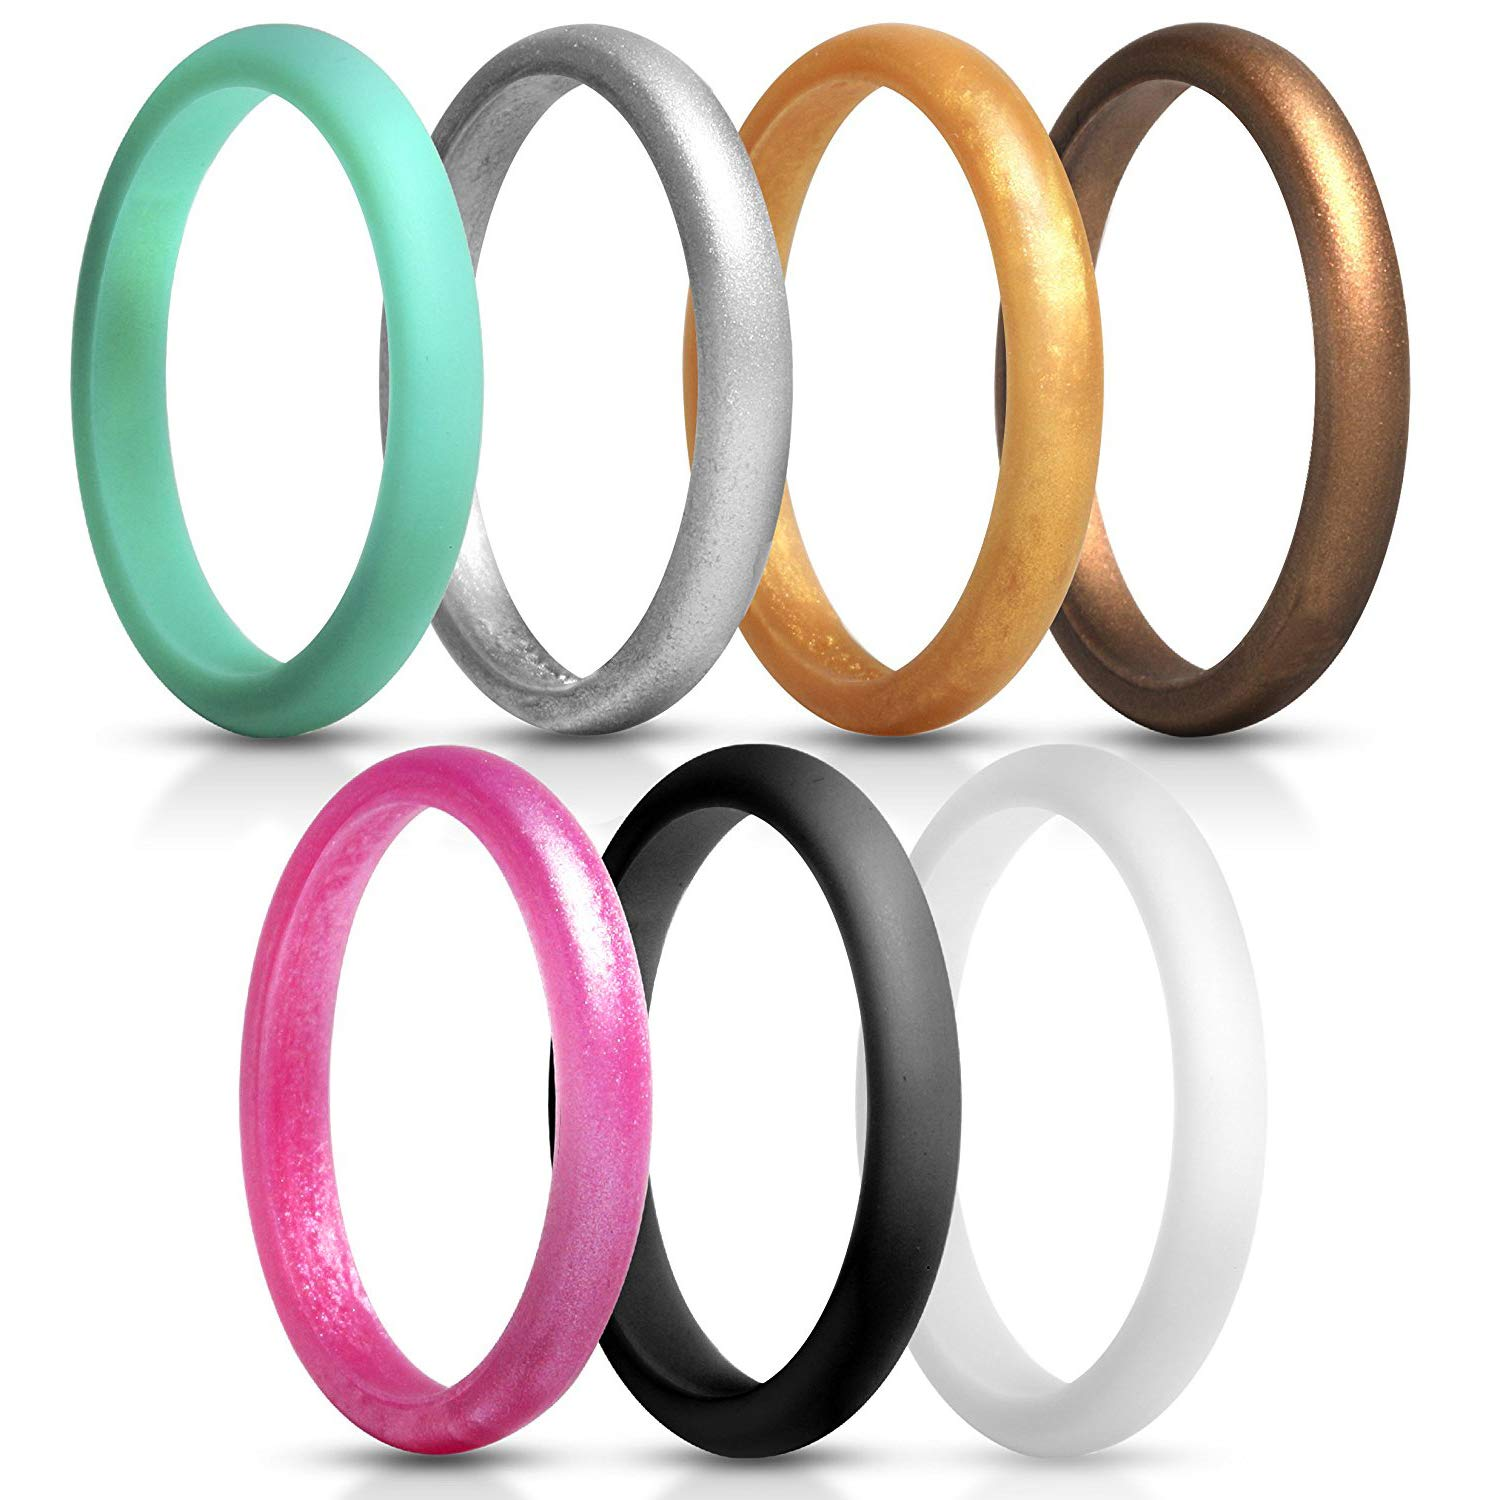 du fangbin Silicone Wedding Ring for Women, Thin Rubber Wedding Bands, Colorful, Skin Safe   7 Pack & Singles 2.7mm Width - 2mm Thick (6)